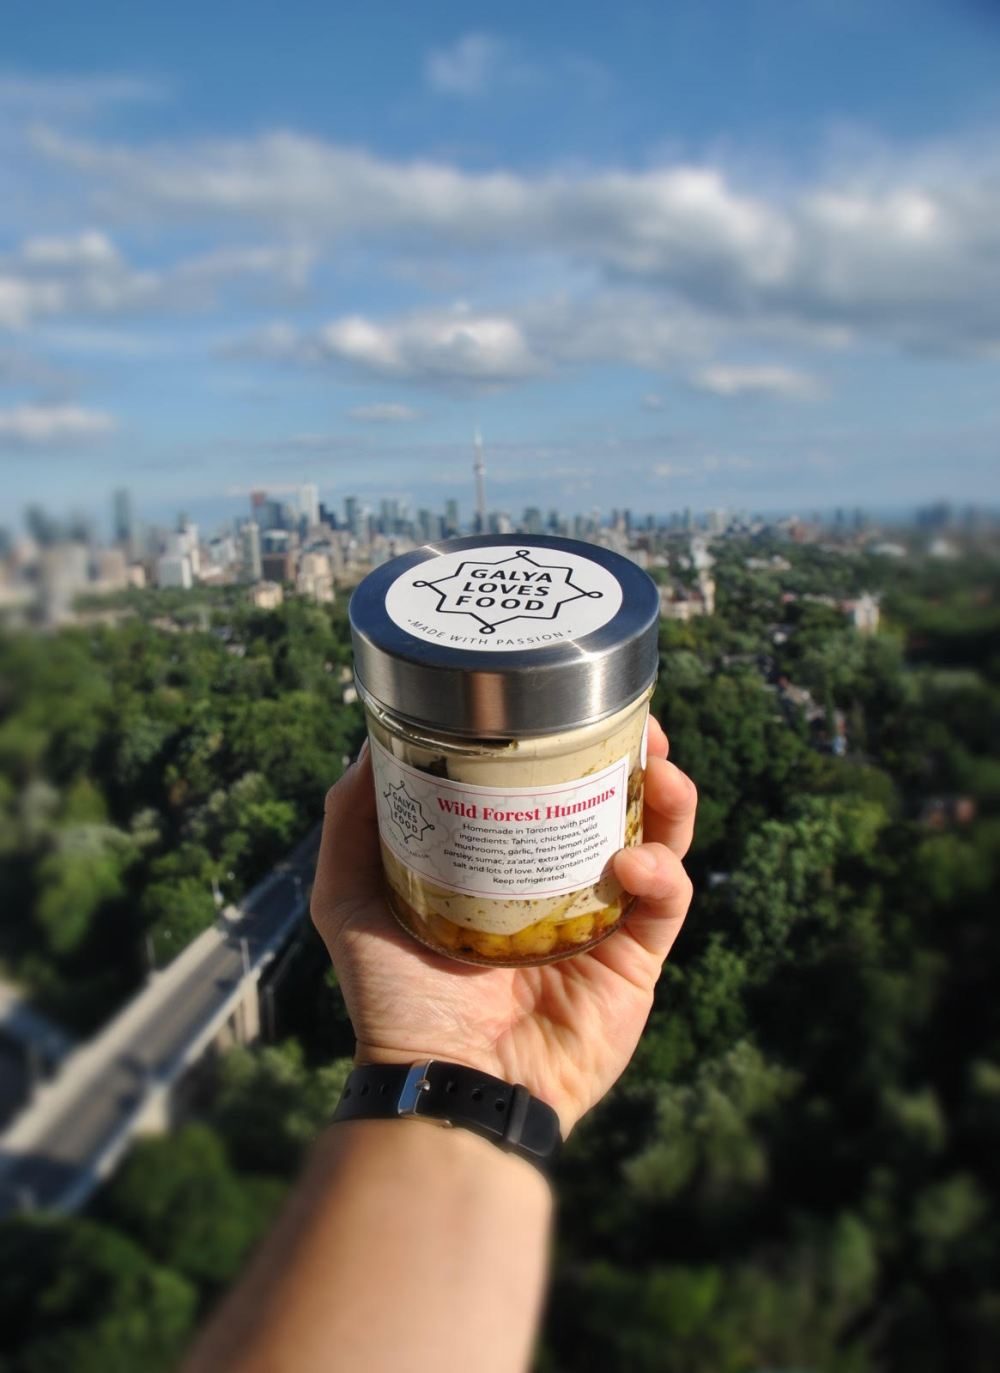 Ori M photo of jar against Toronto skyline - July 22, 2020